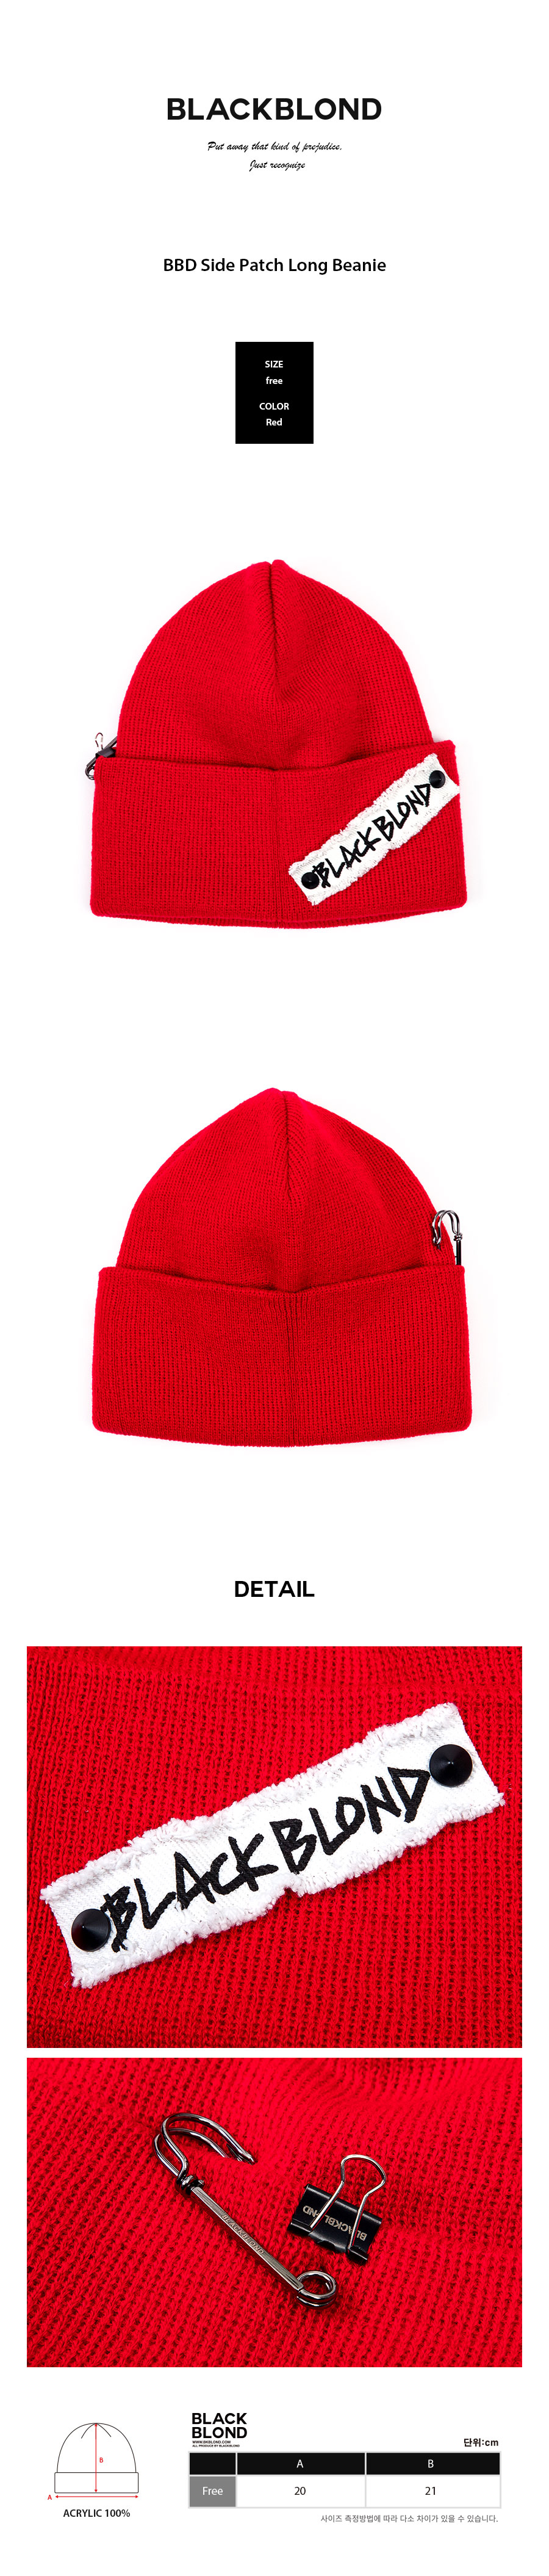 블랙블론드 BLACKBLOND - BBD Side Patch Long Beanie (Red)